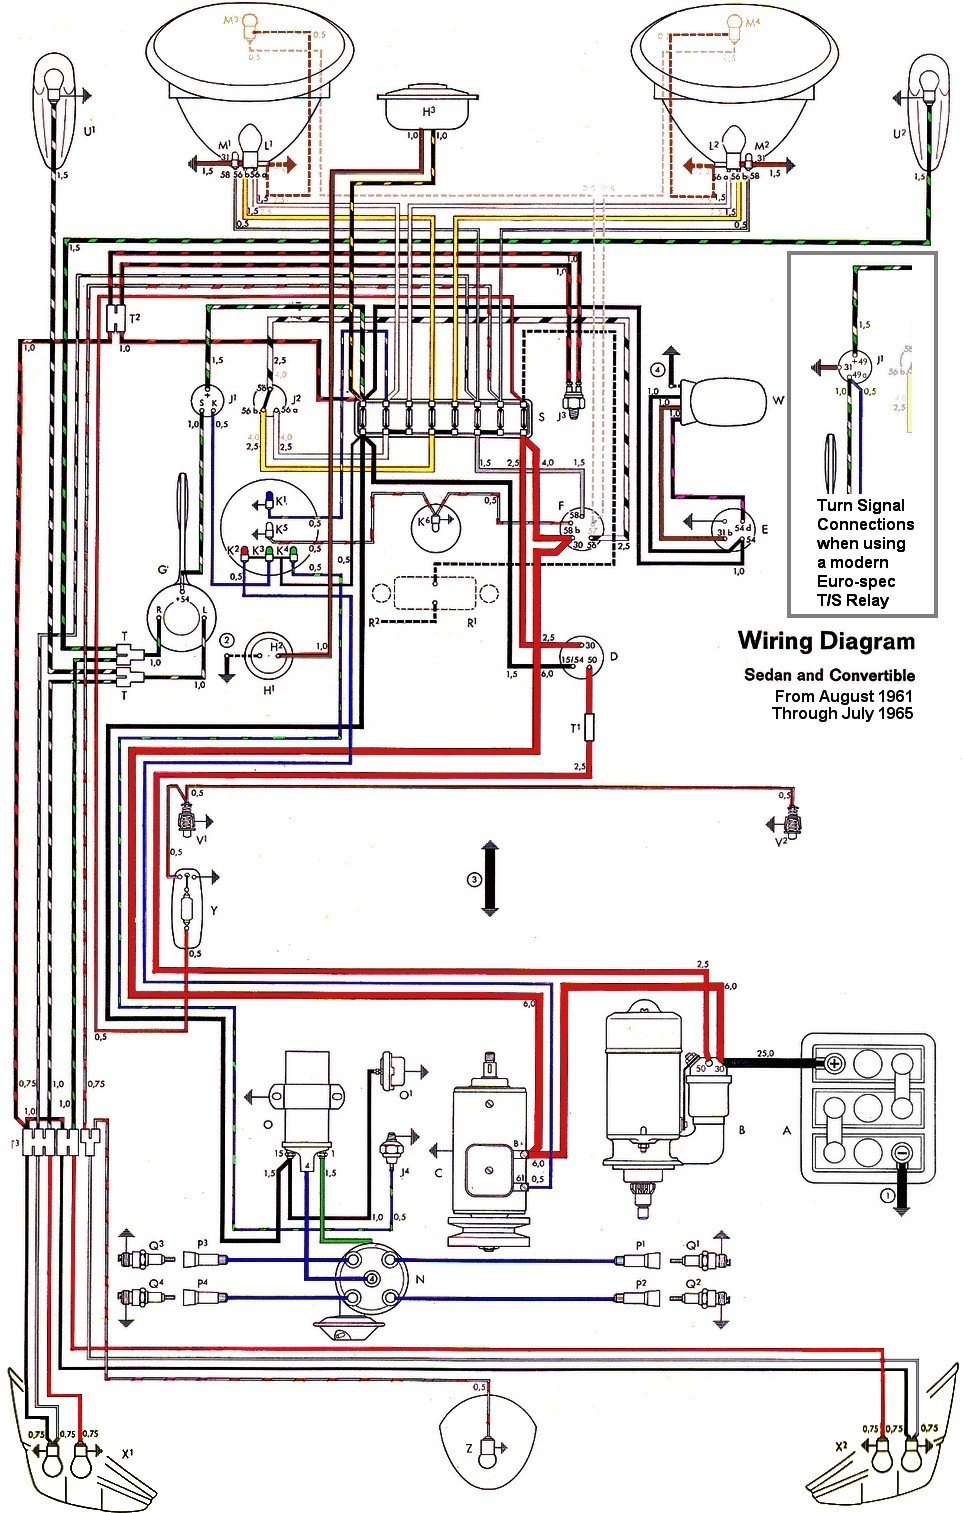 bug_62 65withinset thesamba com type 1 wiring diagrams 1970 vw bug wiring diagram at soozxer.org